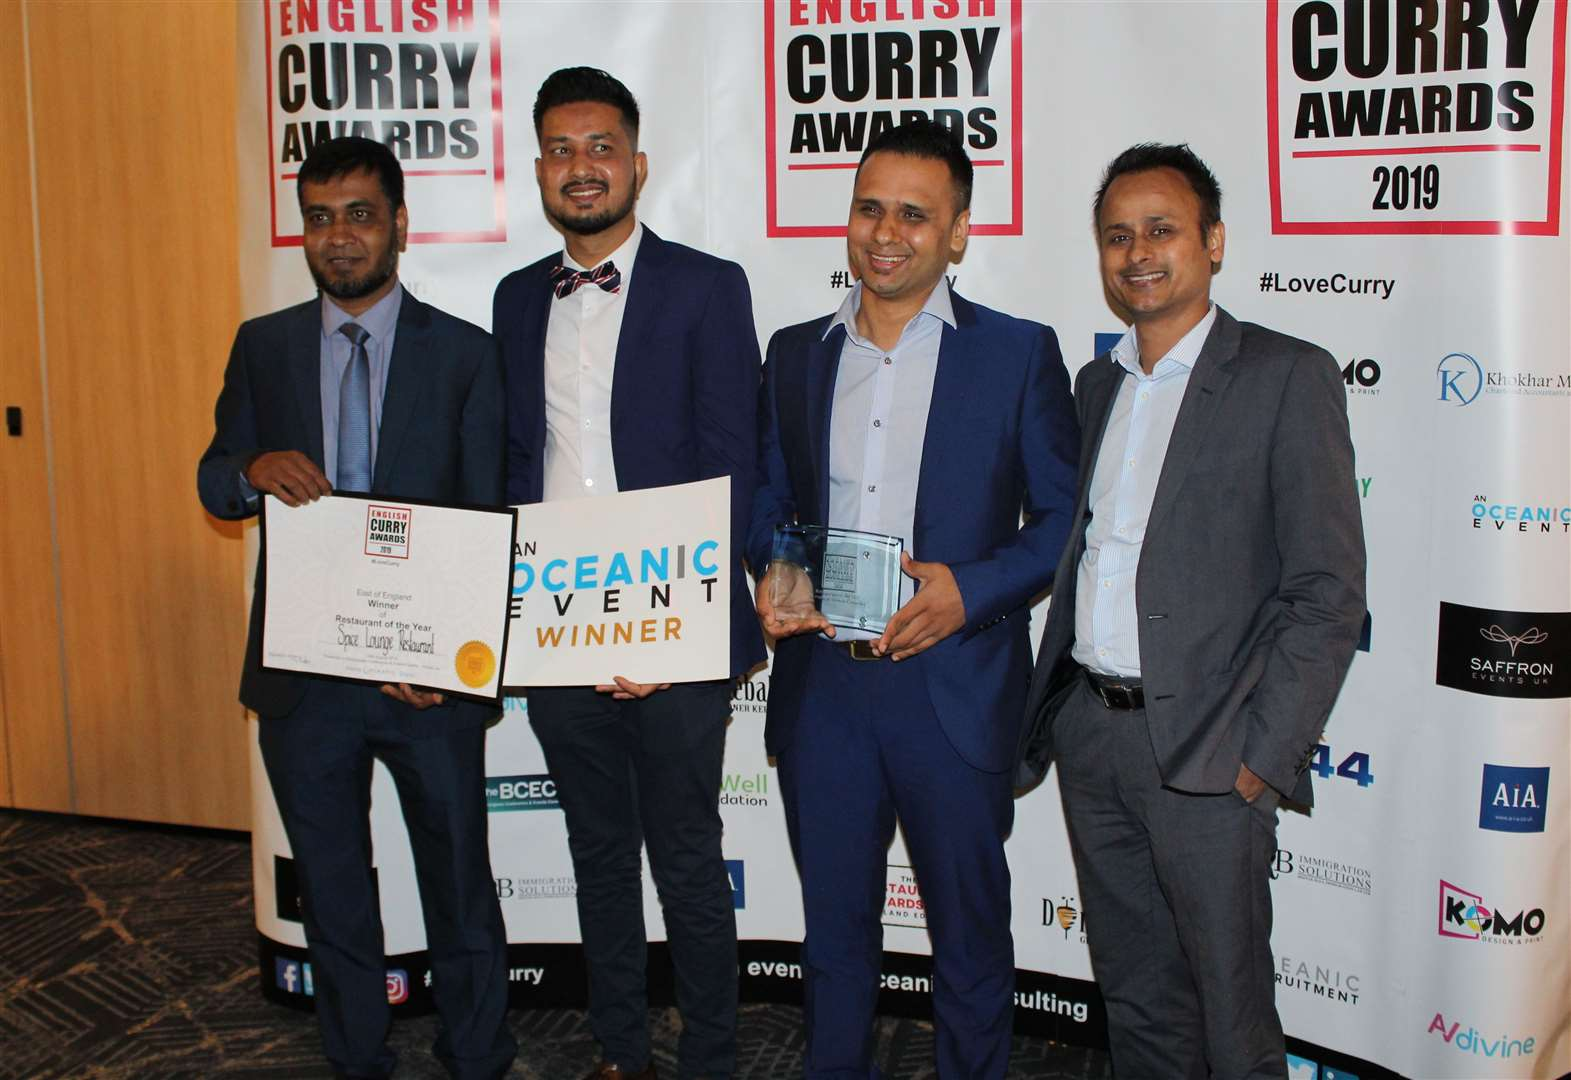 This Indian restaurant has been named the best in England